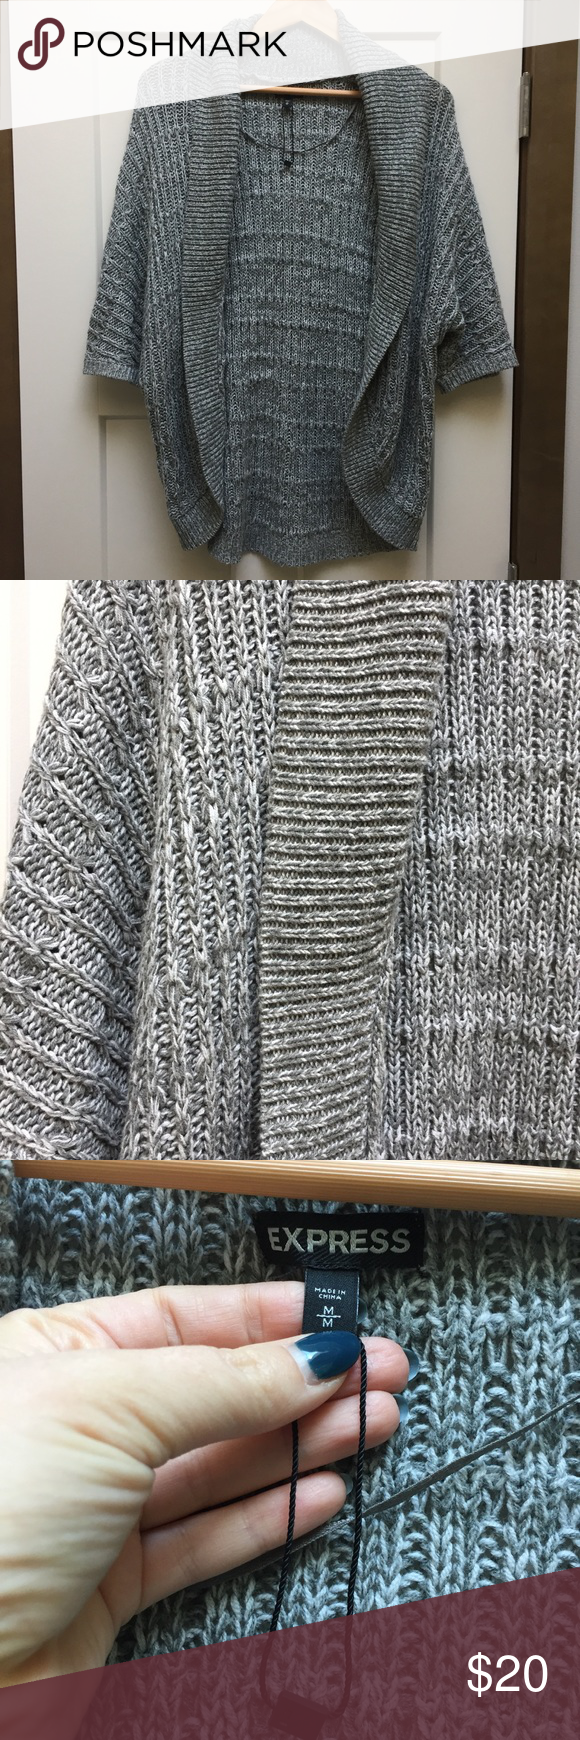 Gorgeous Cocoon Open Sweater A gorgeous and very comfortable open cocoon style sweater in a gray color. By Express and in excellent condition. Barely worn! Express Sweaters Cardigans